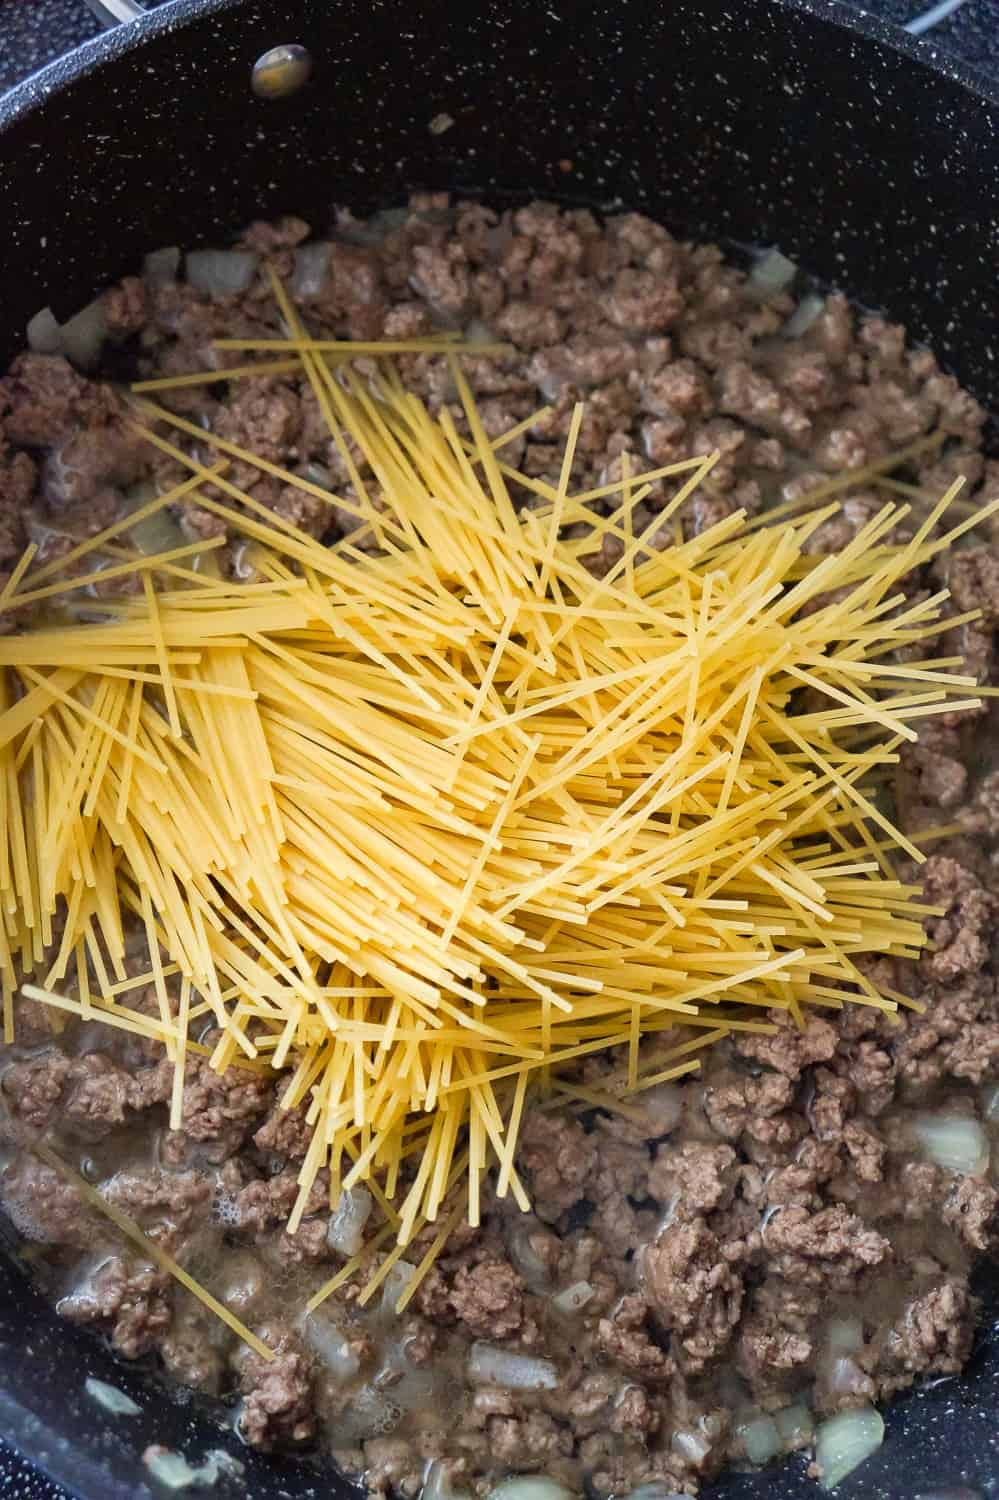 uncooked spaghetti noodles on top of ground beef and water in a saute pan